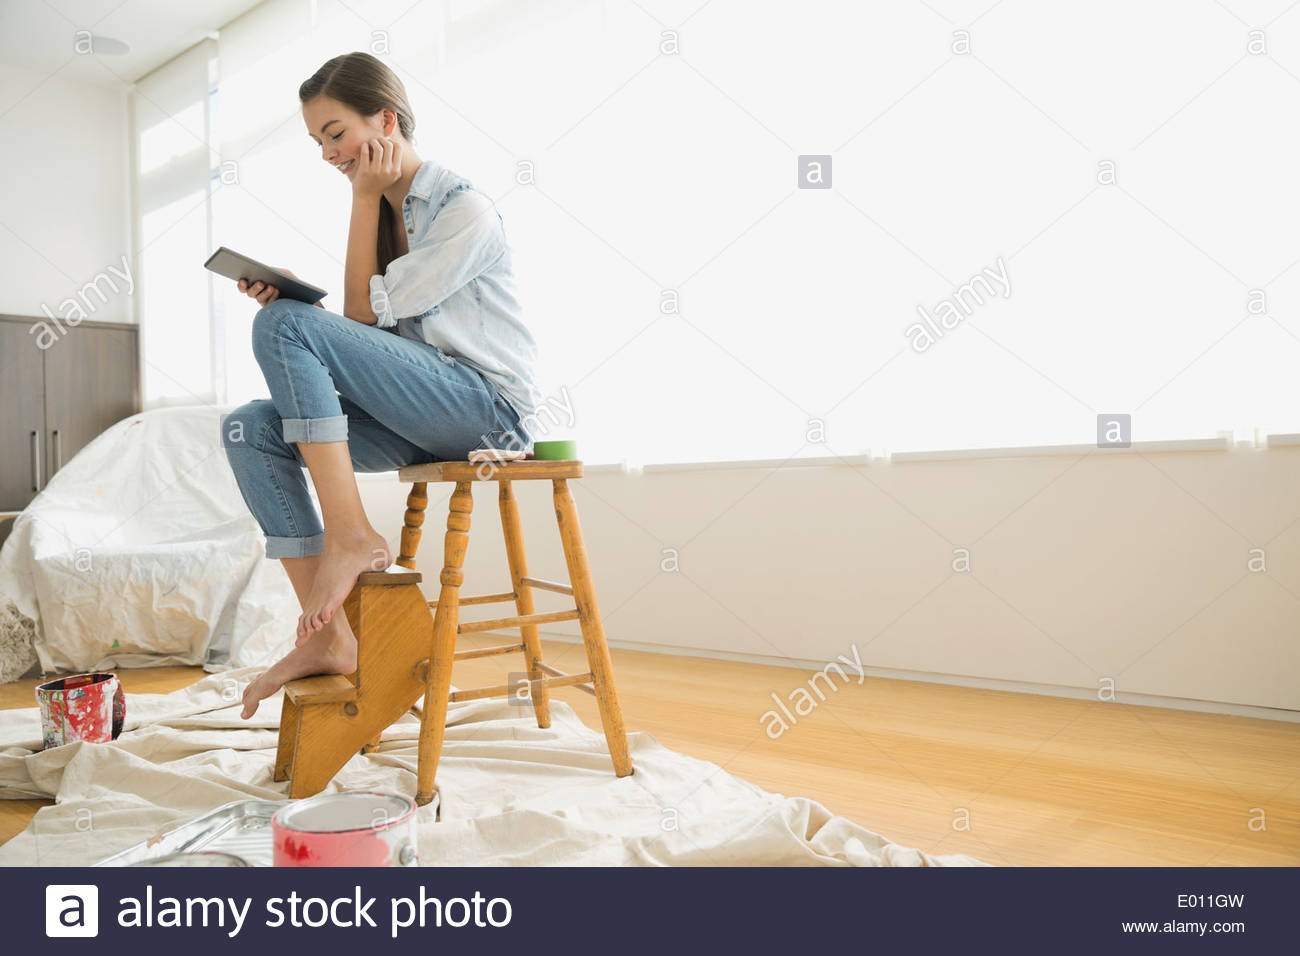 Girl with digital tablet preparing to paint room - Stock Image